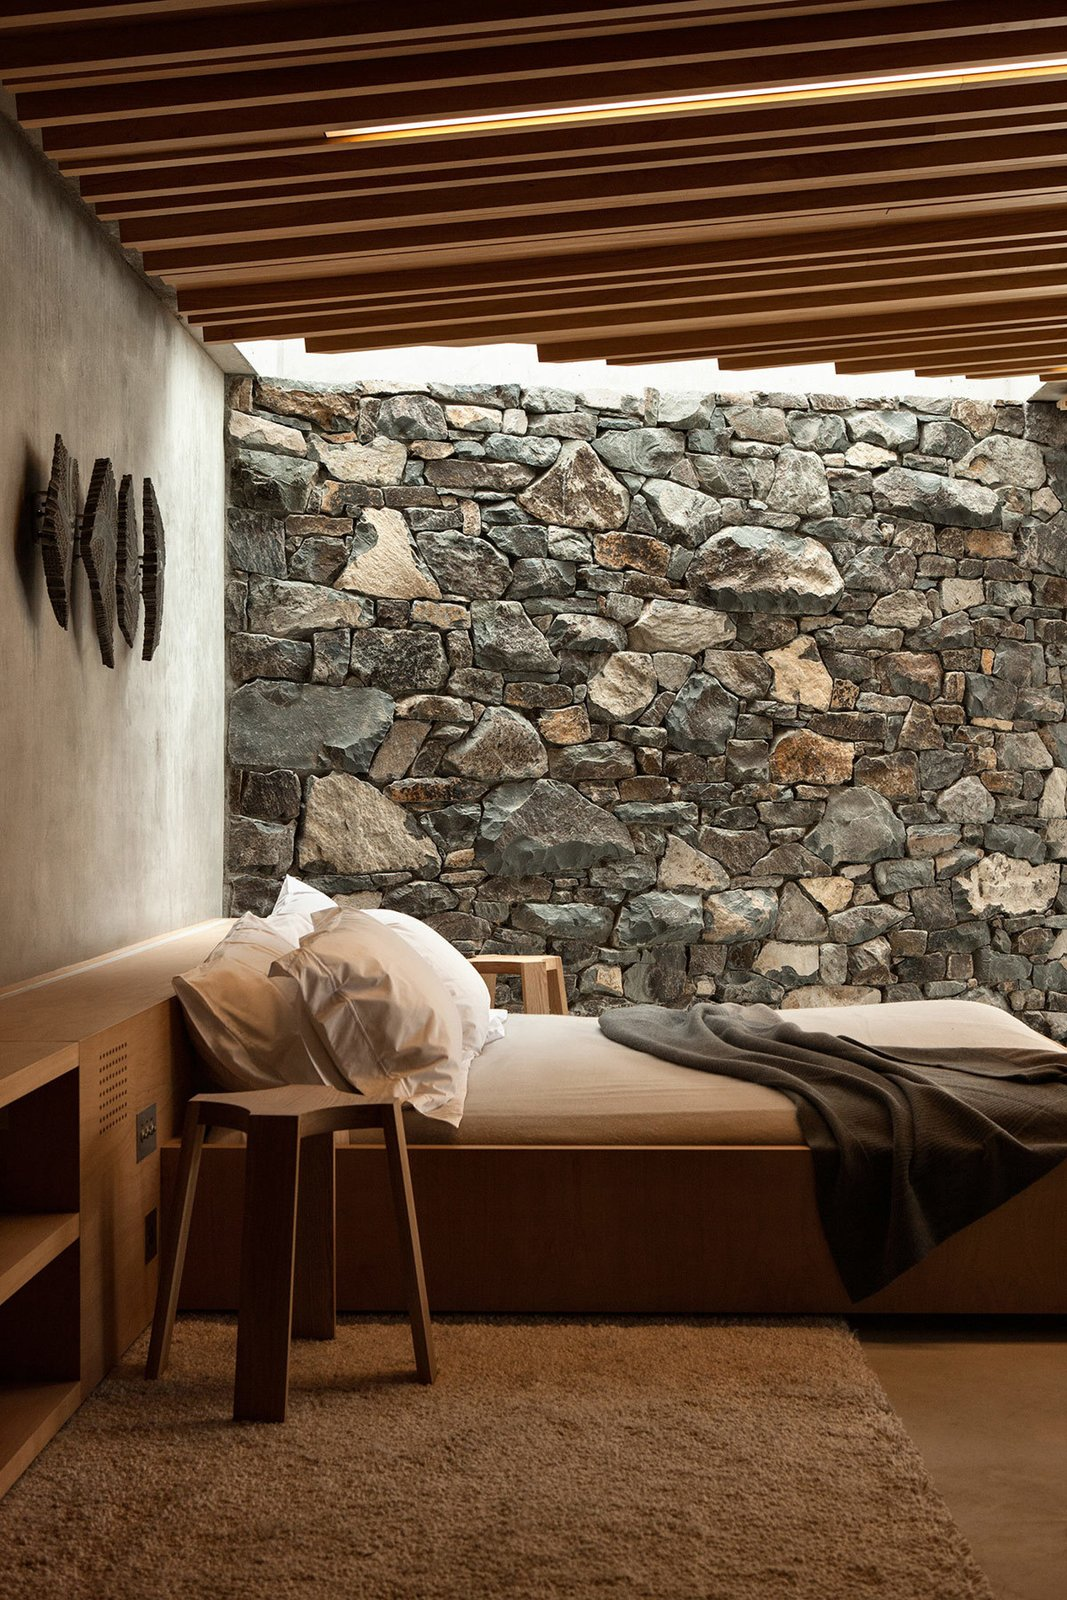 The Seascape Retreat is an Exemplary Romantic Getaway by Gessato